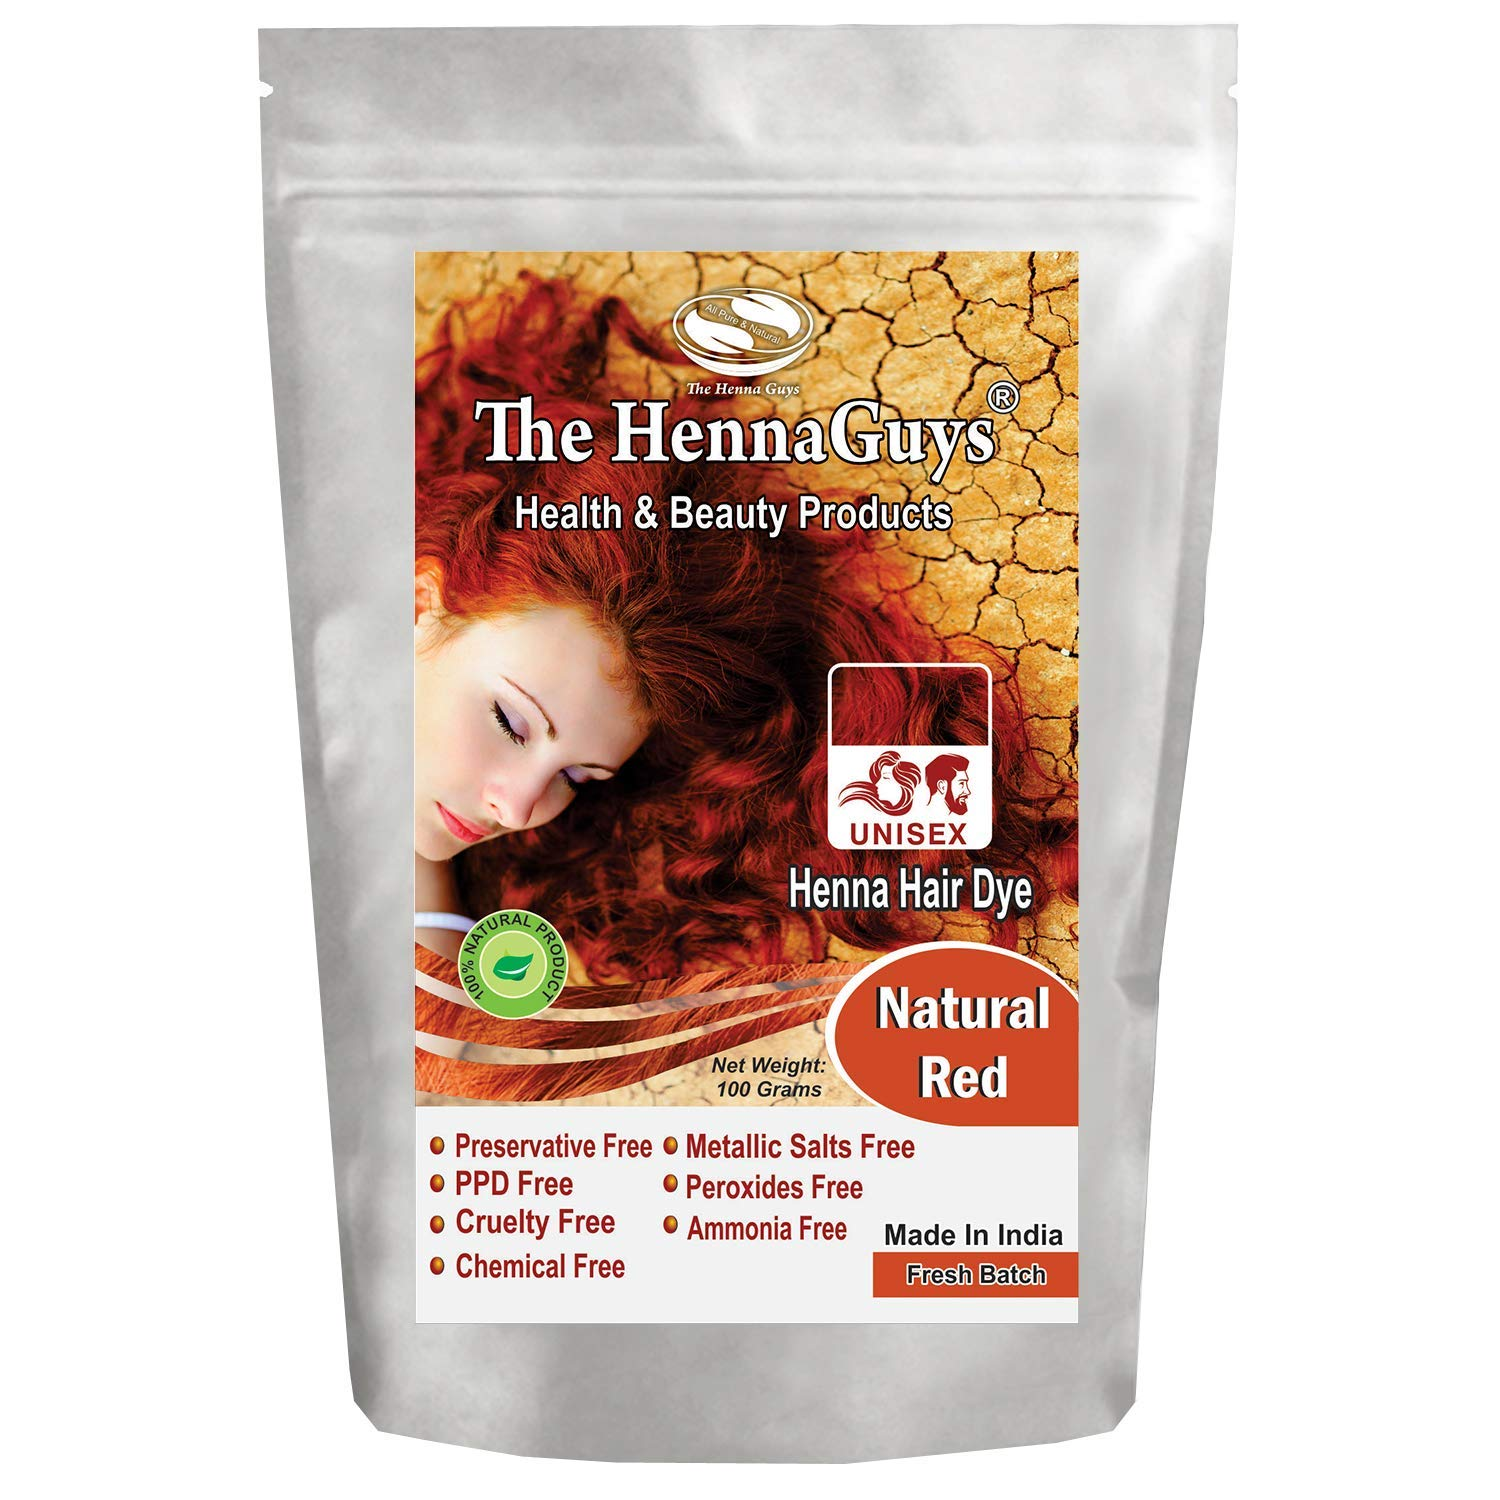 Natural Red Henna Hair Color/Dye 100 Grams - The Henna Guys